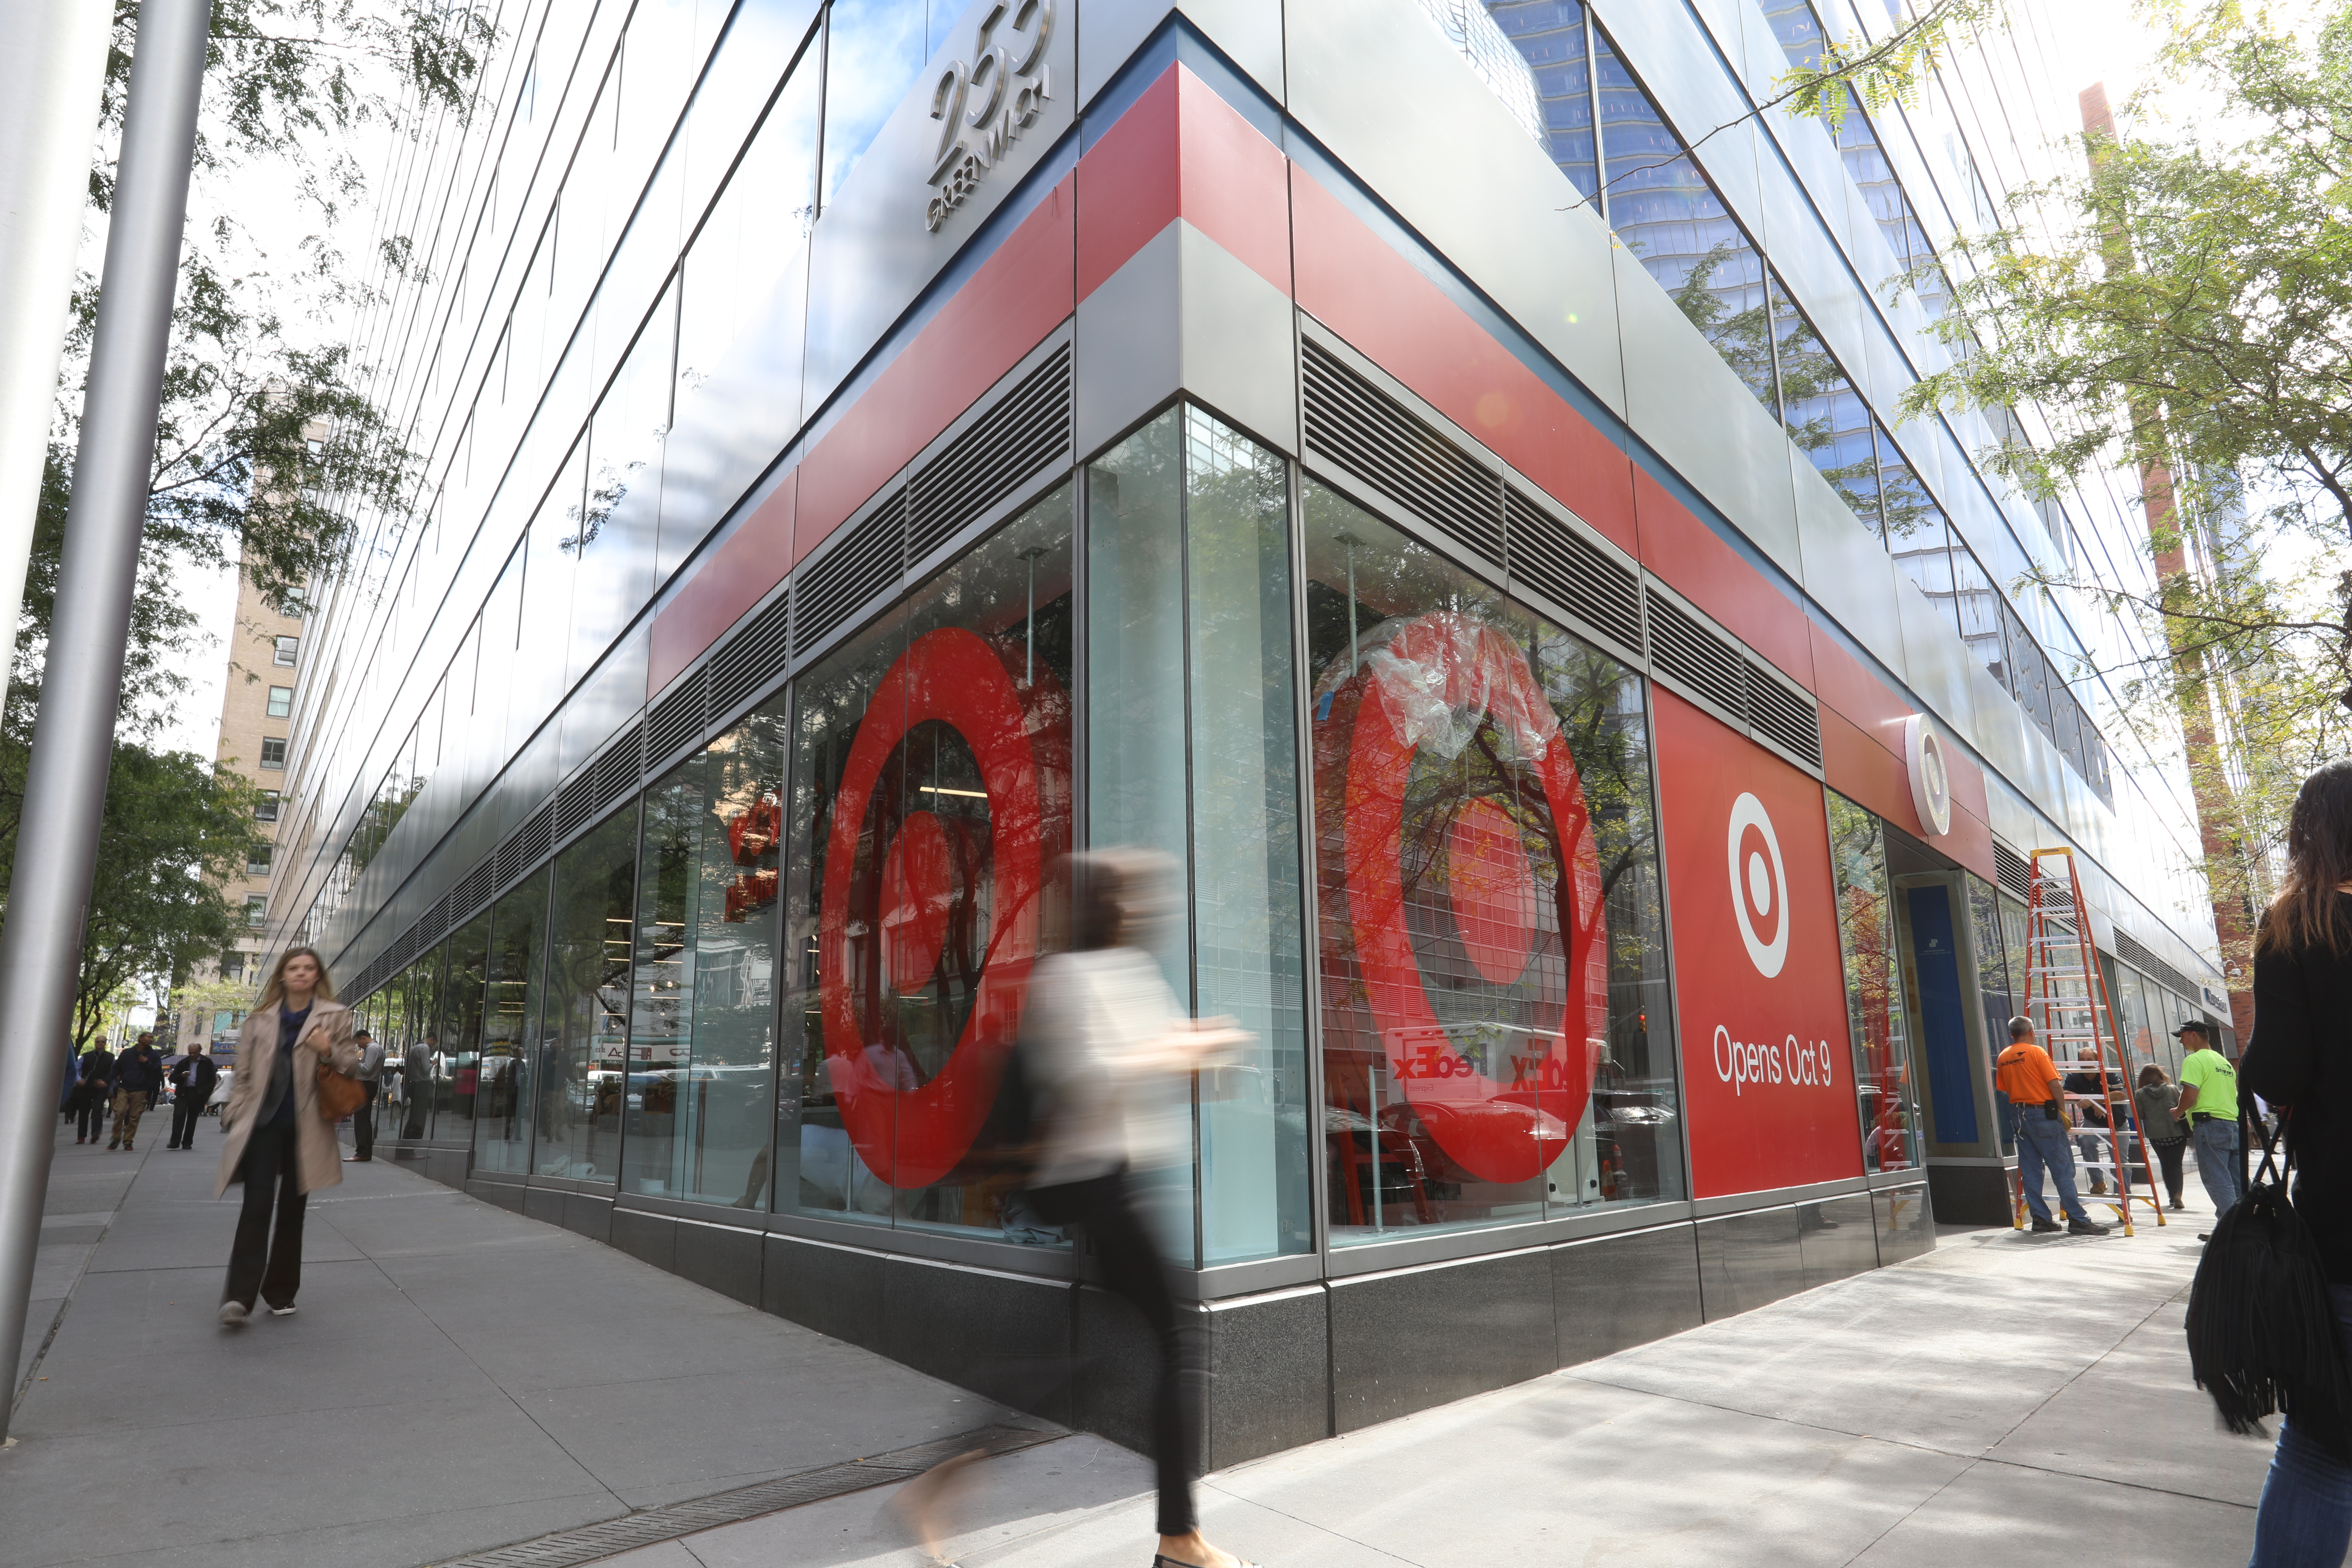 The new Target store opening in Lower Manhattan in October 2016.